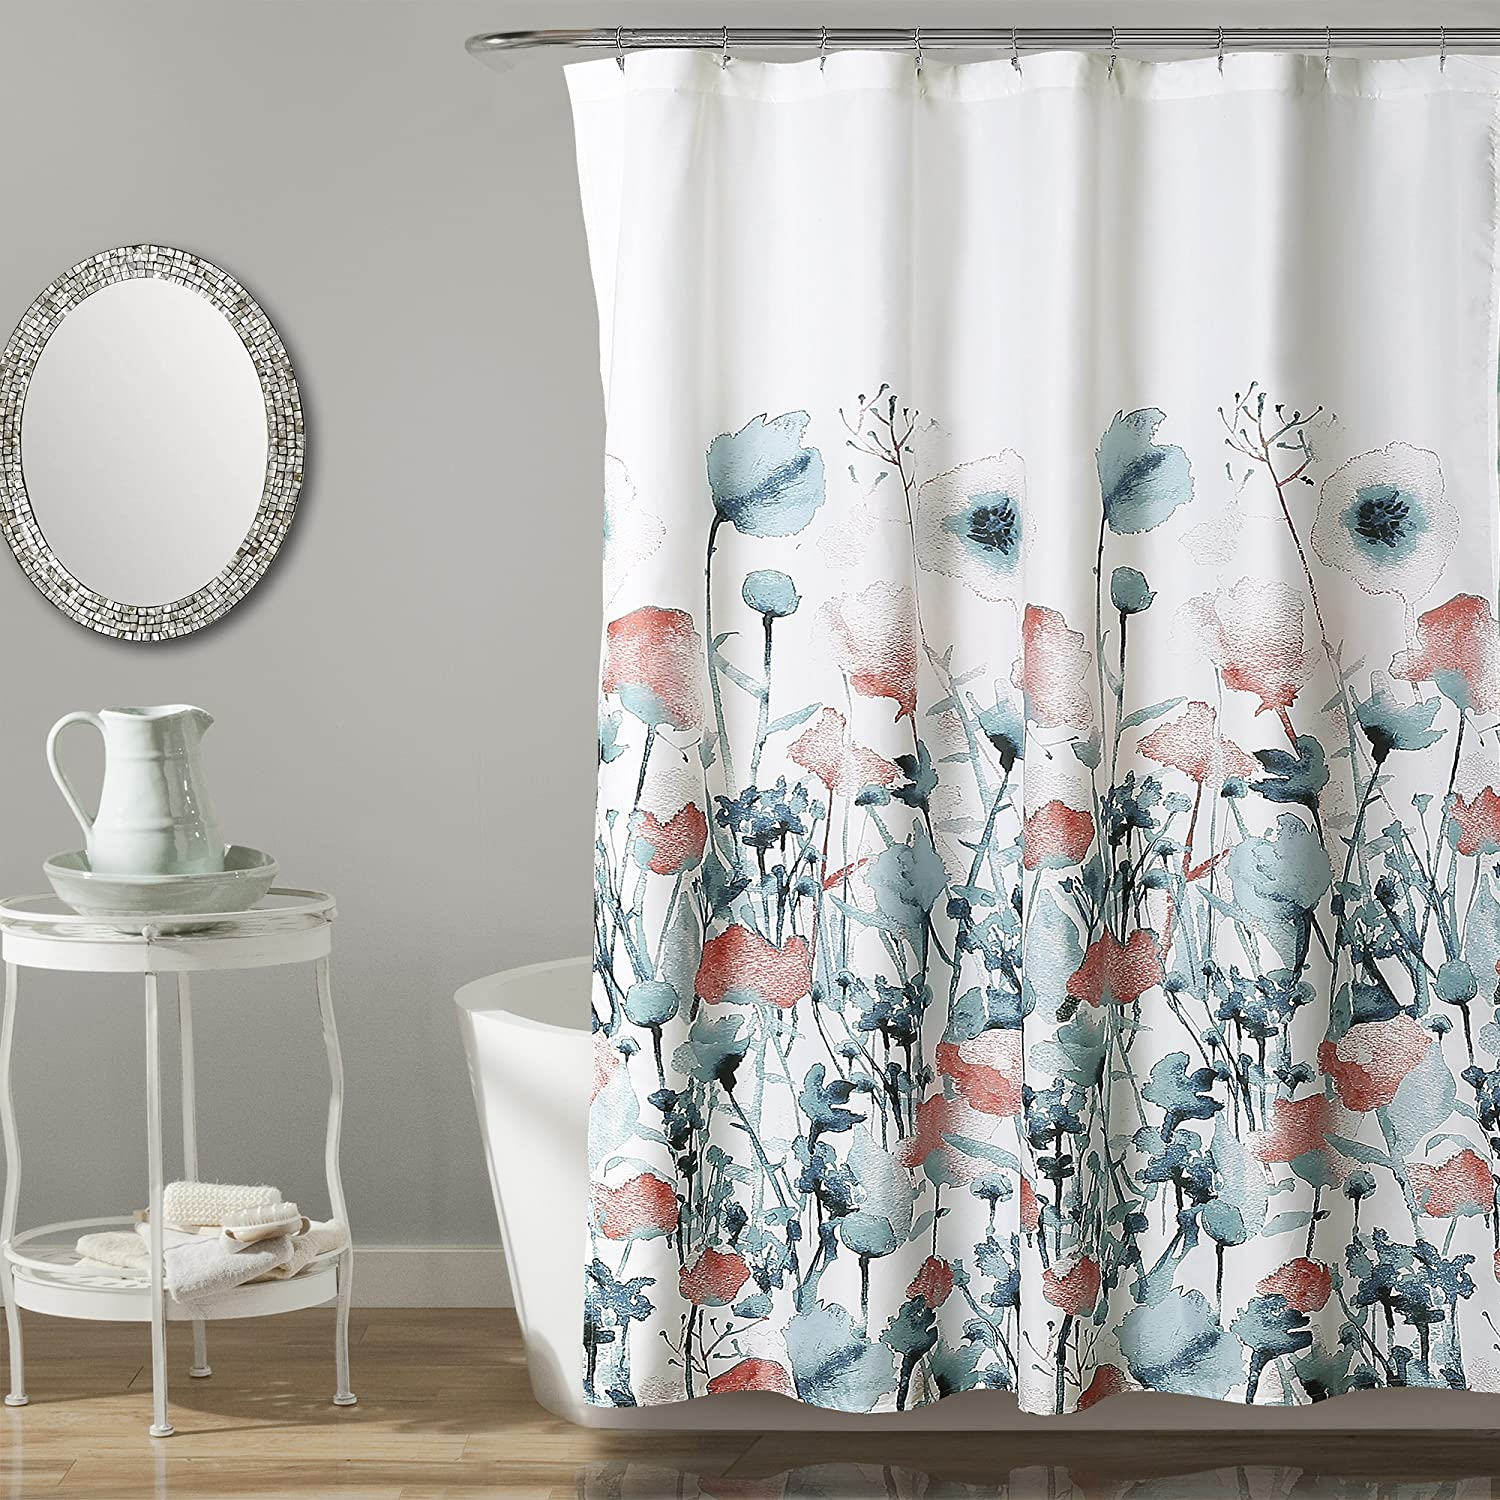 CROSCILL AZZURO FAUX LINEN IVORY EMBROIDERED FLORAL OLD WORLD SHOWER CURTAIN